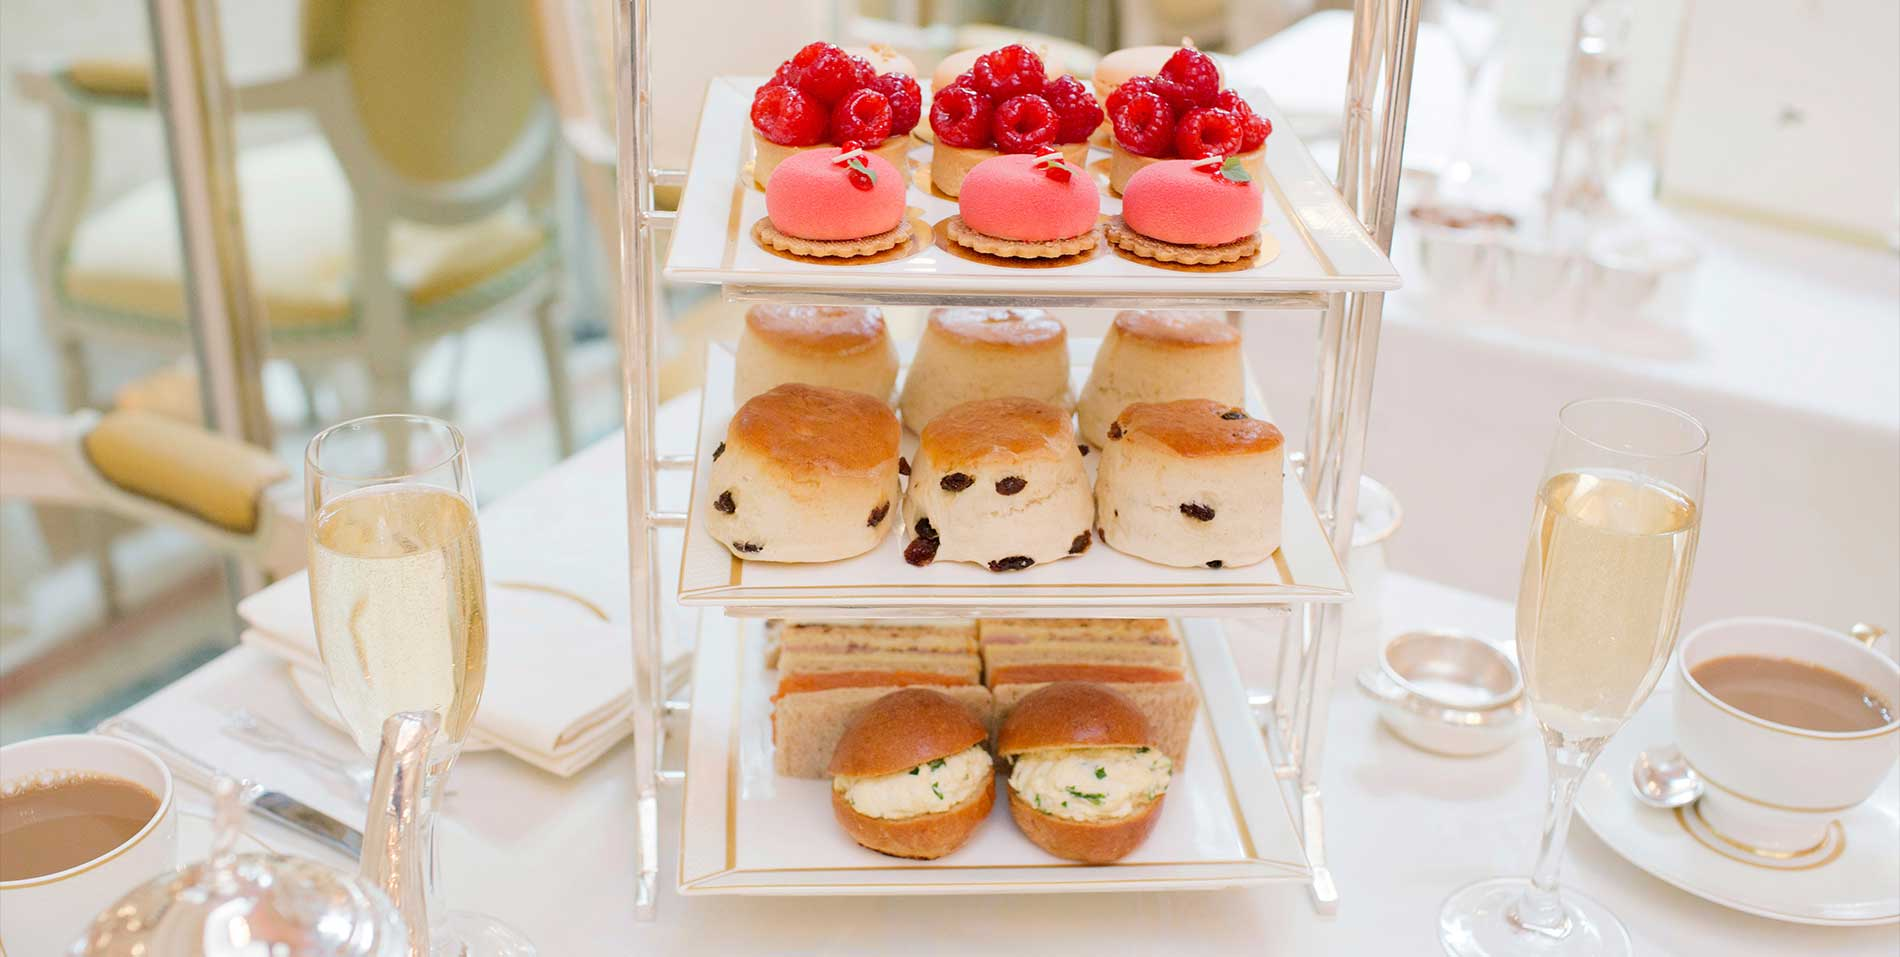 Offer piccadilly the ritz. Champaign clipart champagne afternoon tea